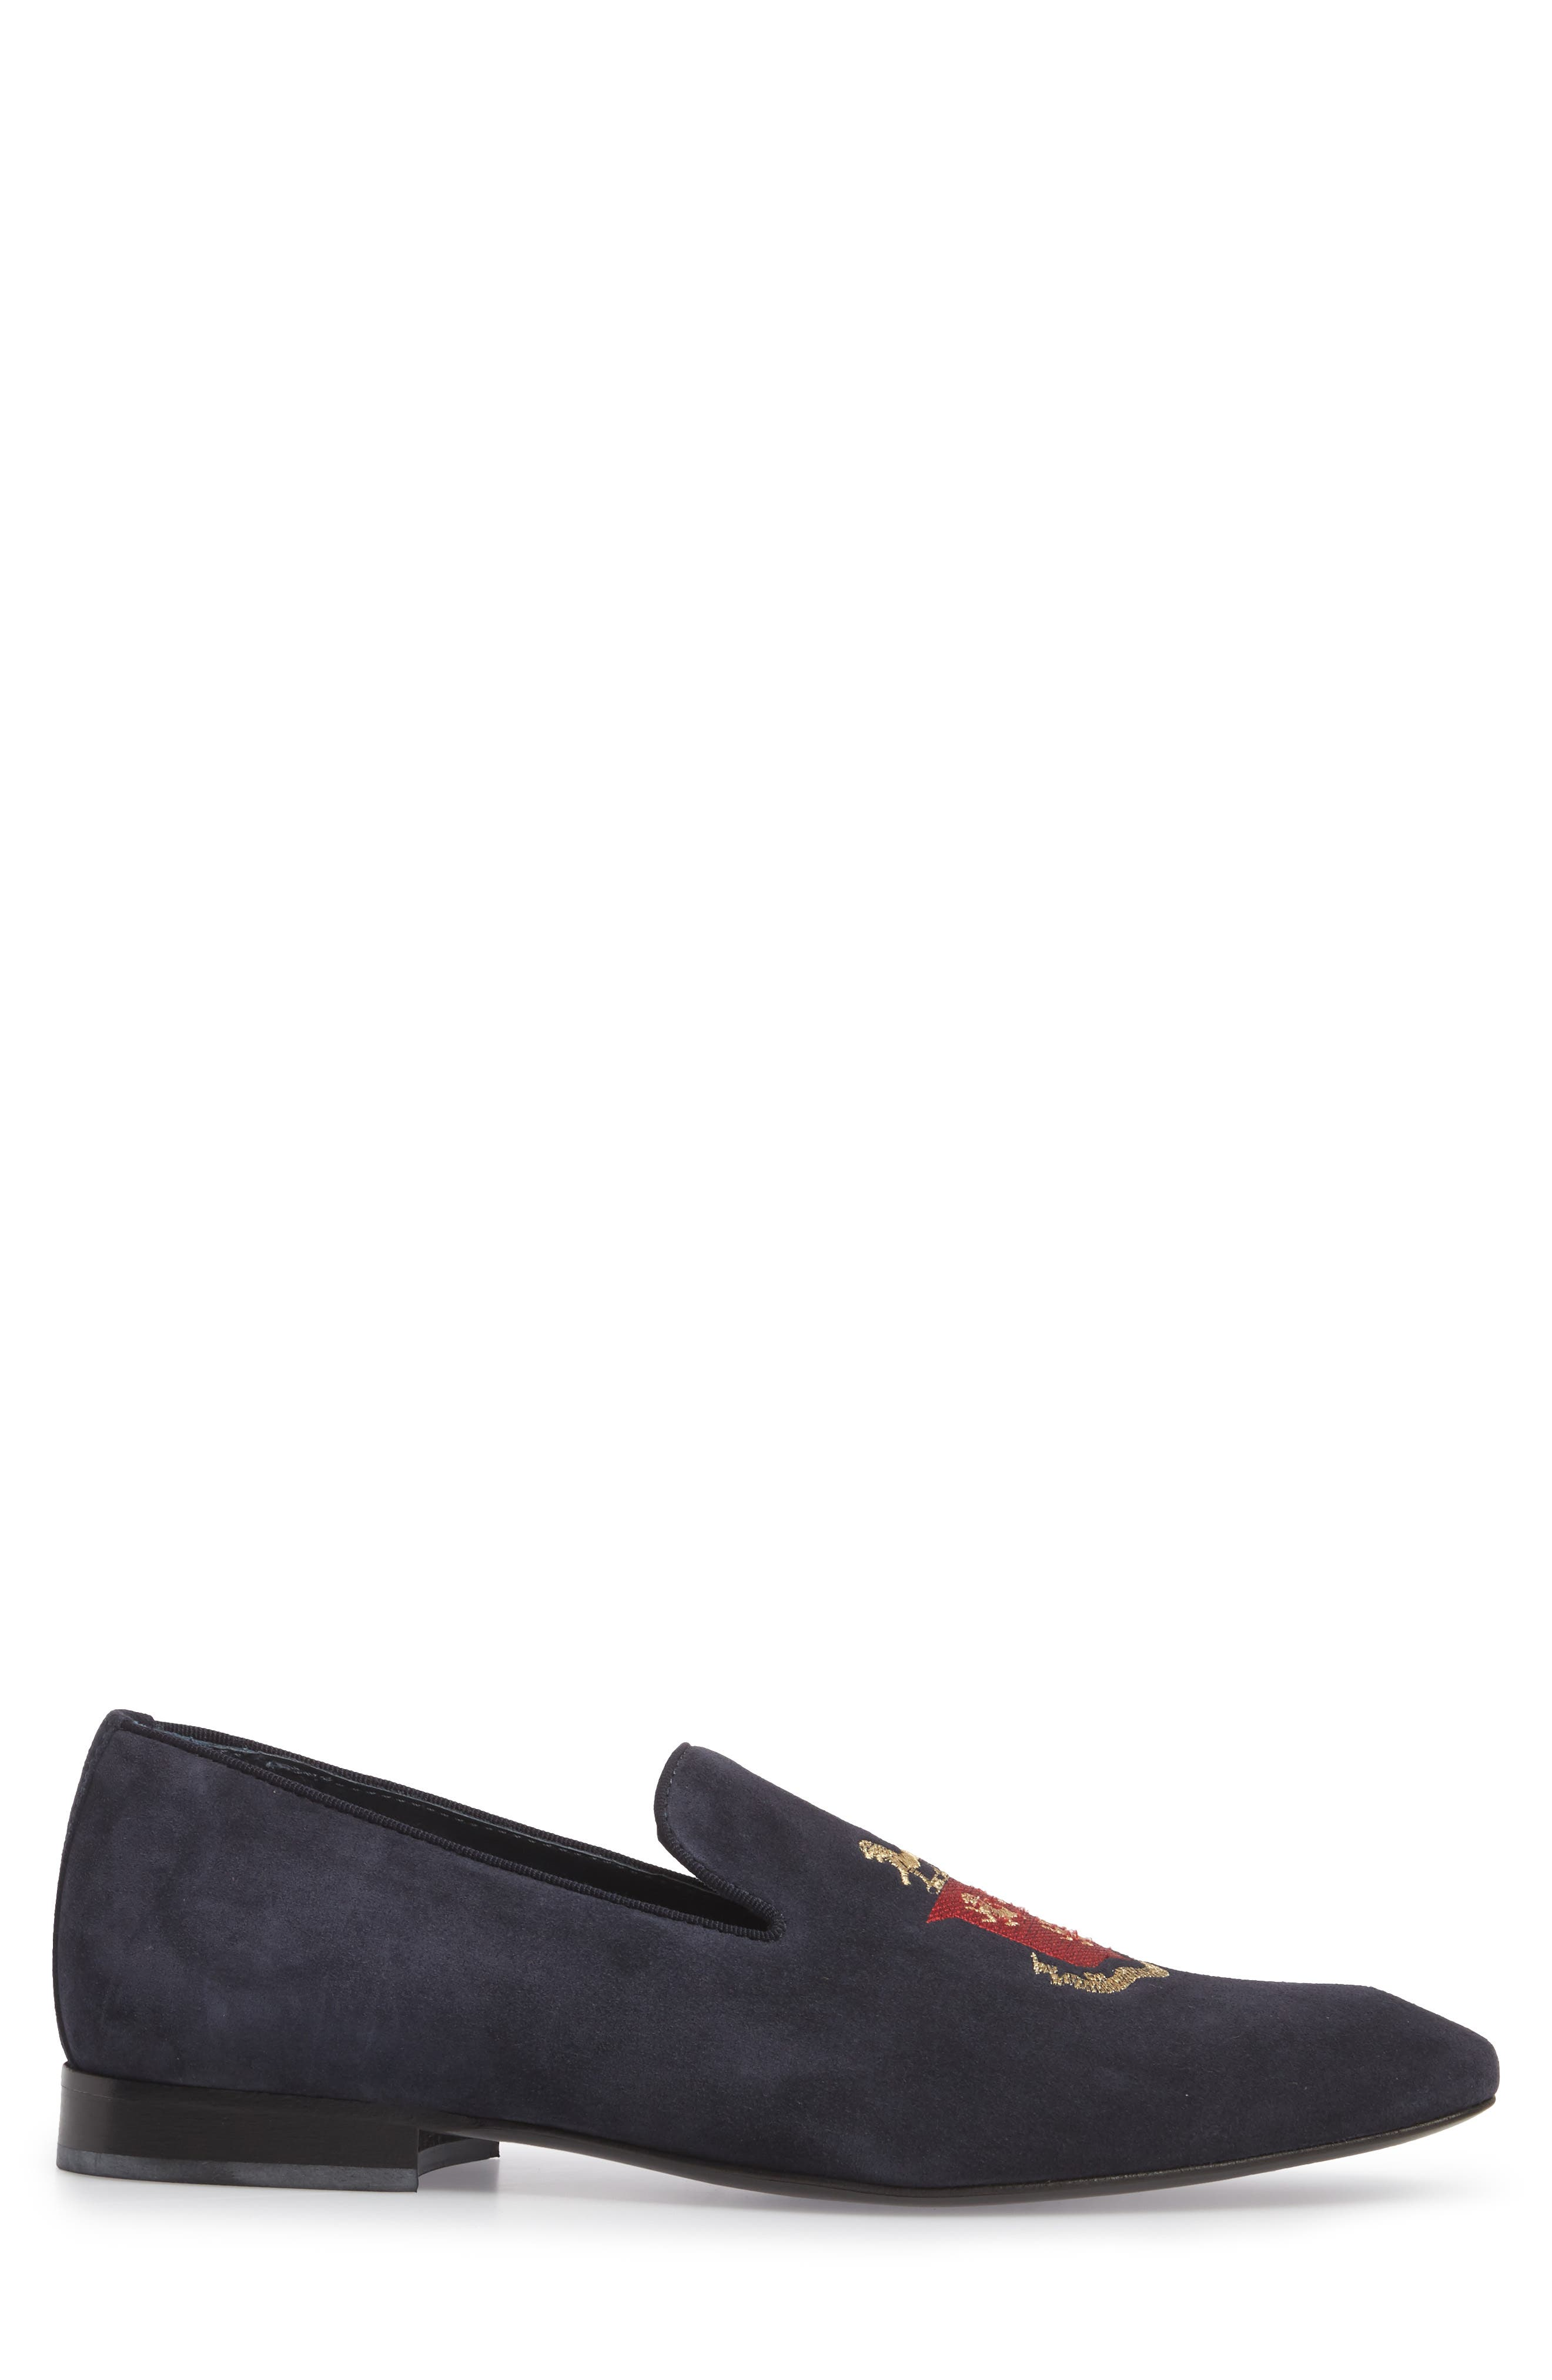 Altos Embroidered Venetian Loafer,                             Alternate thumbnail 3, color,                             Navy